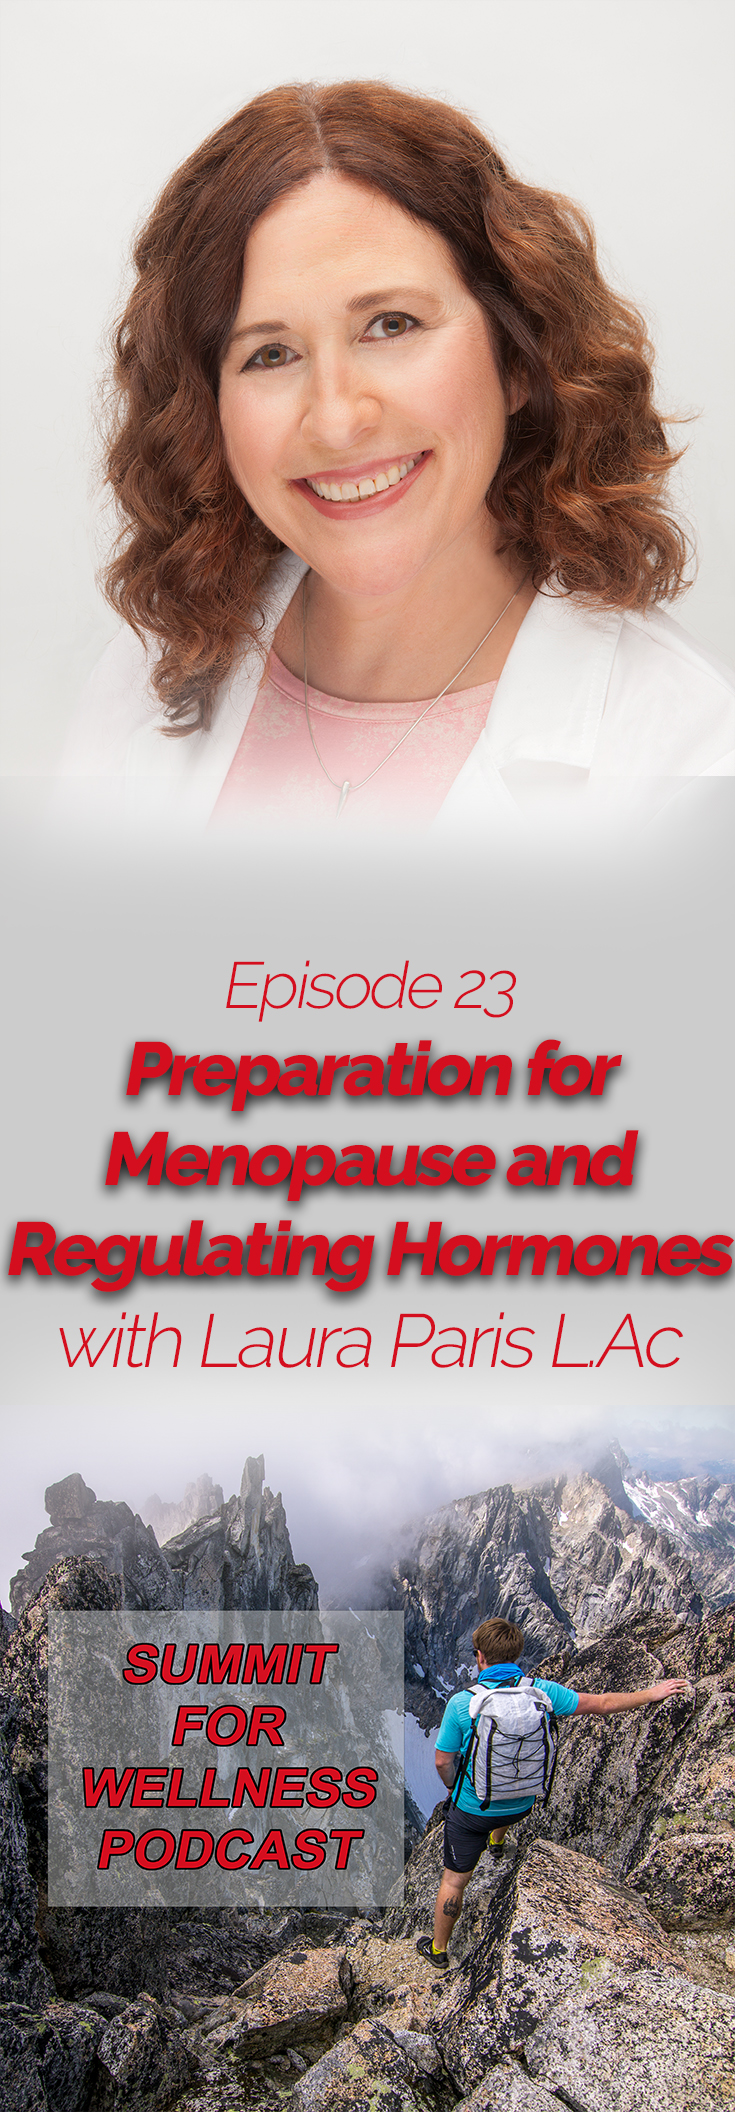 Preparation for Menopause and Regulating Hormones